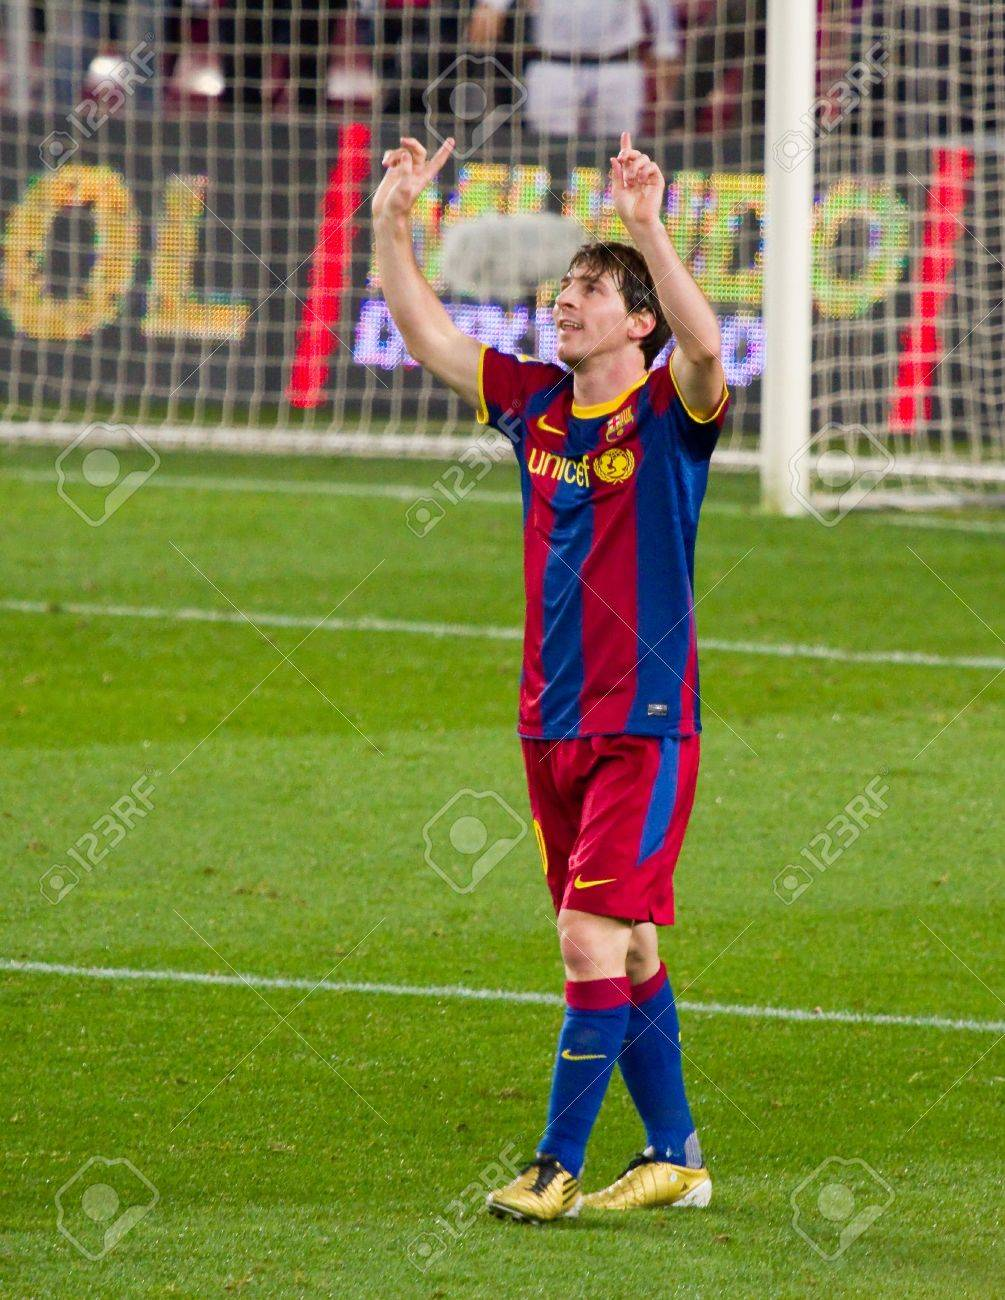 BARCELONA - JANUARY 12: Lionel Messi celebrating a goal during football Spanish Cup match between FC Barcelona and Real Betis, final score 5 - 0. January 12, 2011 in Barcelona, Spain Stock Photo - 13685453